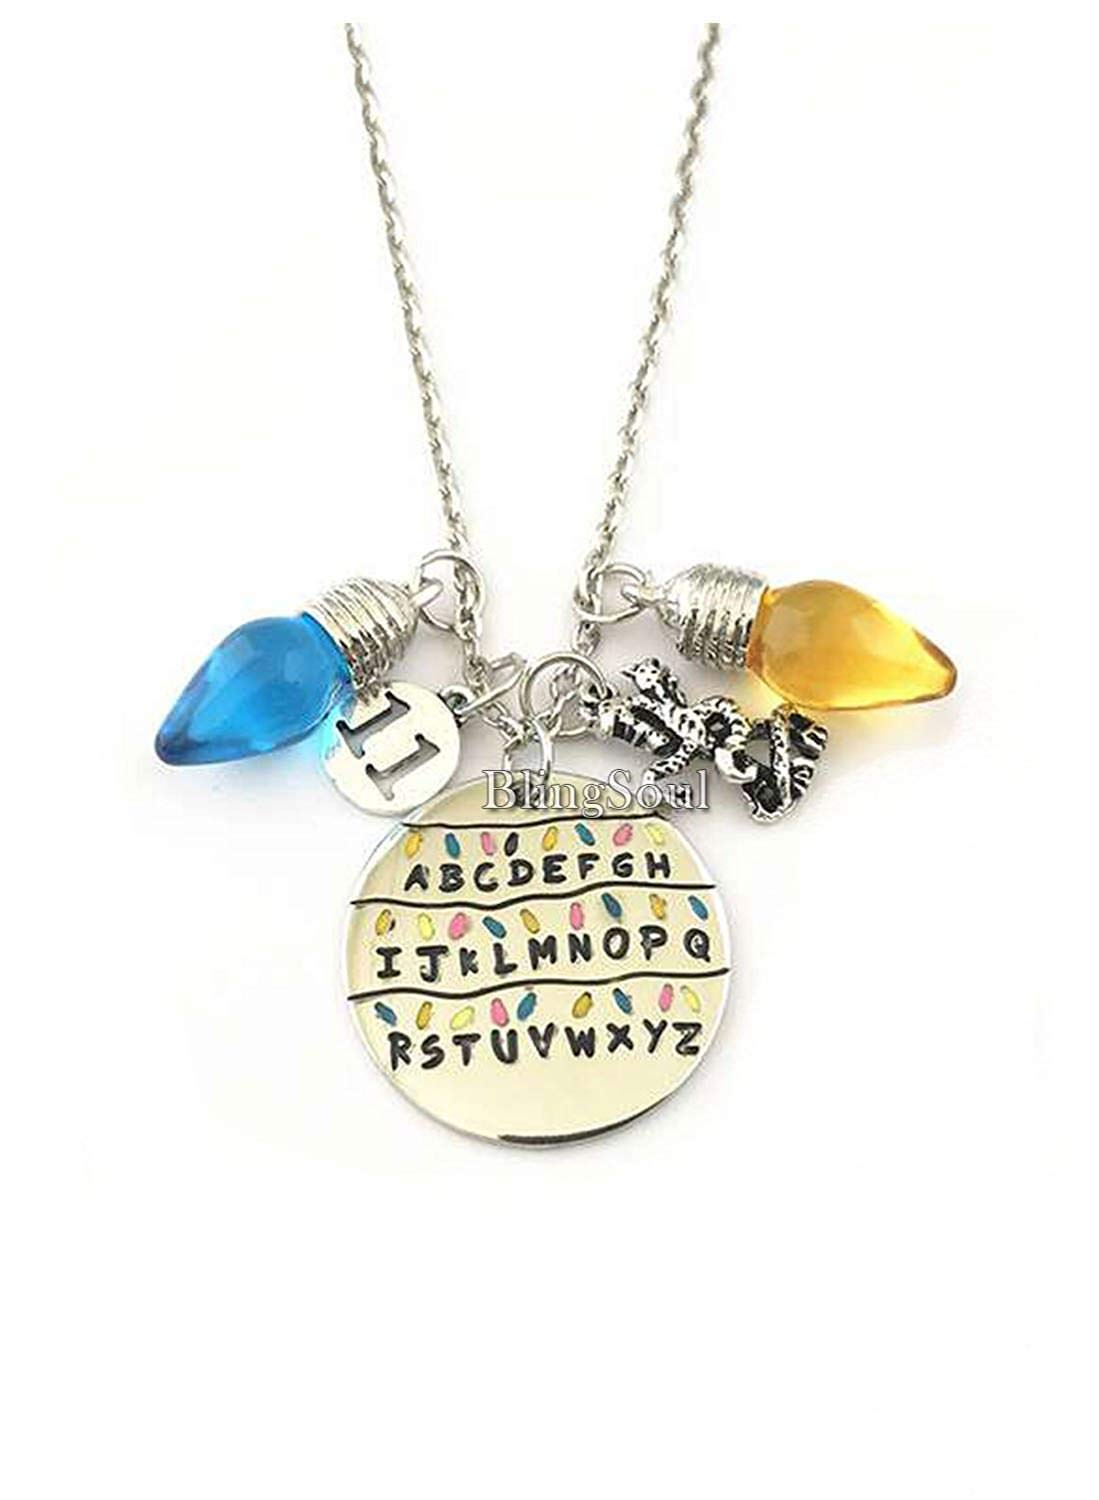 Stranger Things Necklace Jewelry Merchandise Idea - ABCD Necklace Gift Women